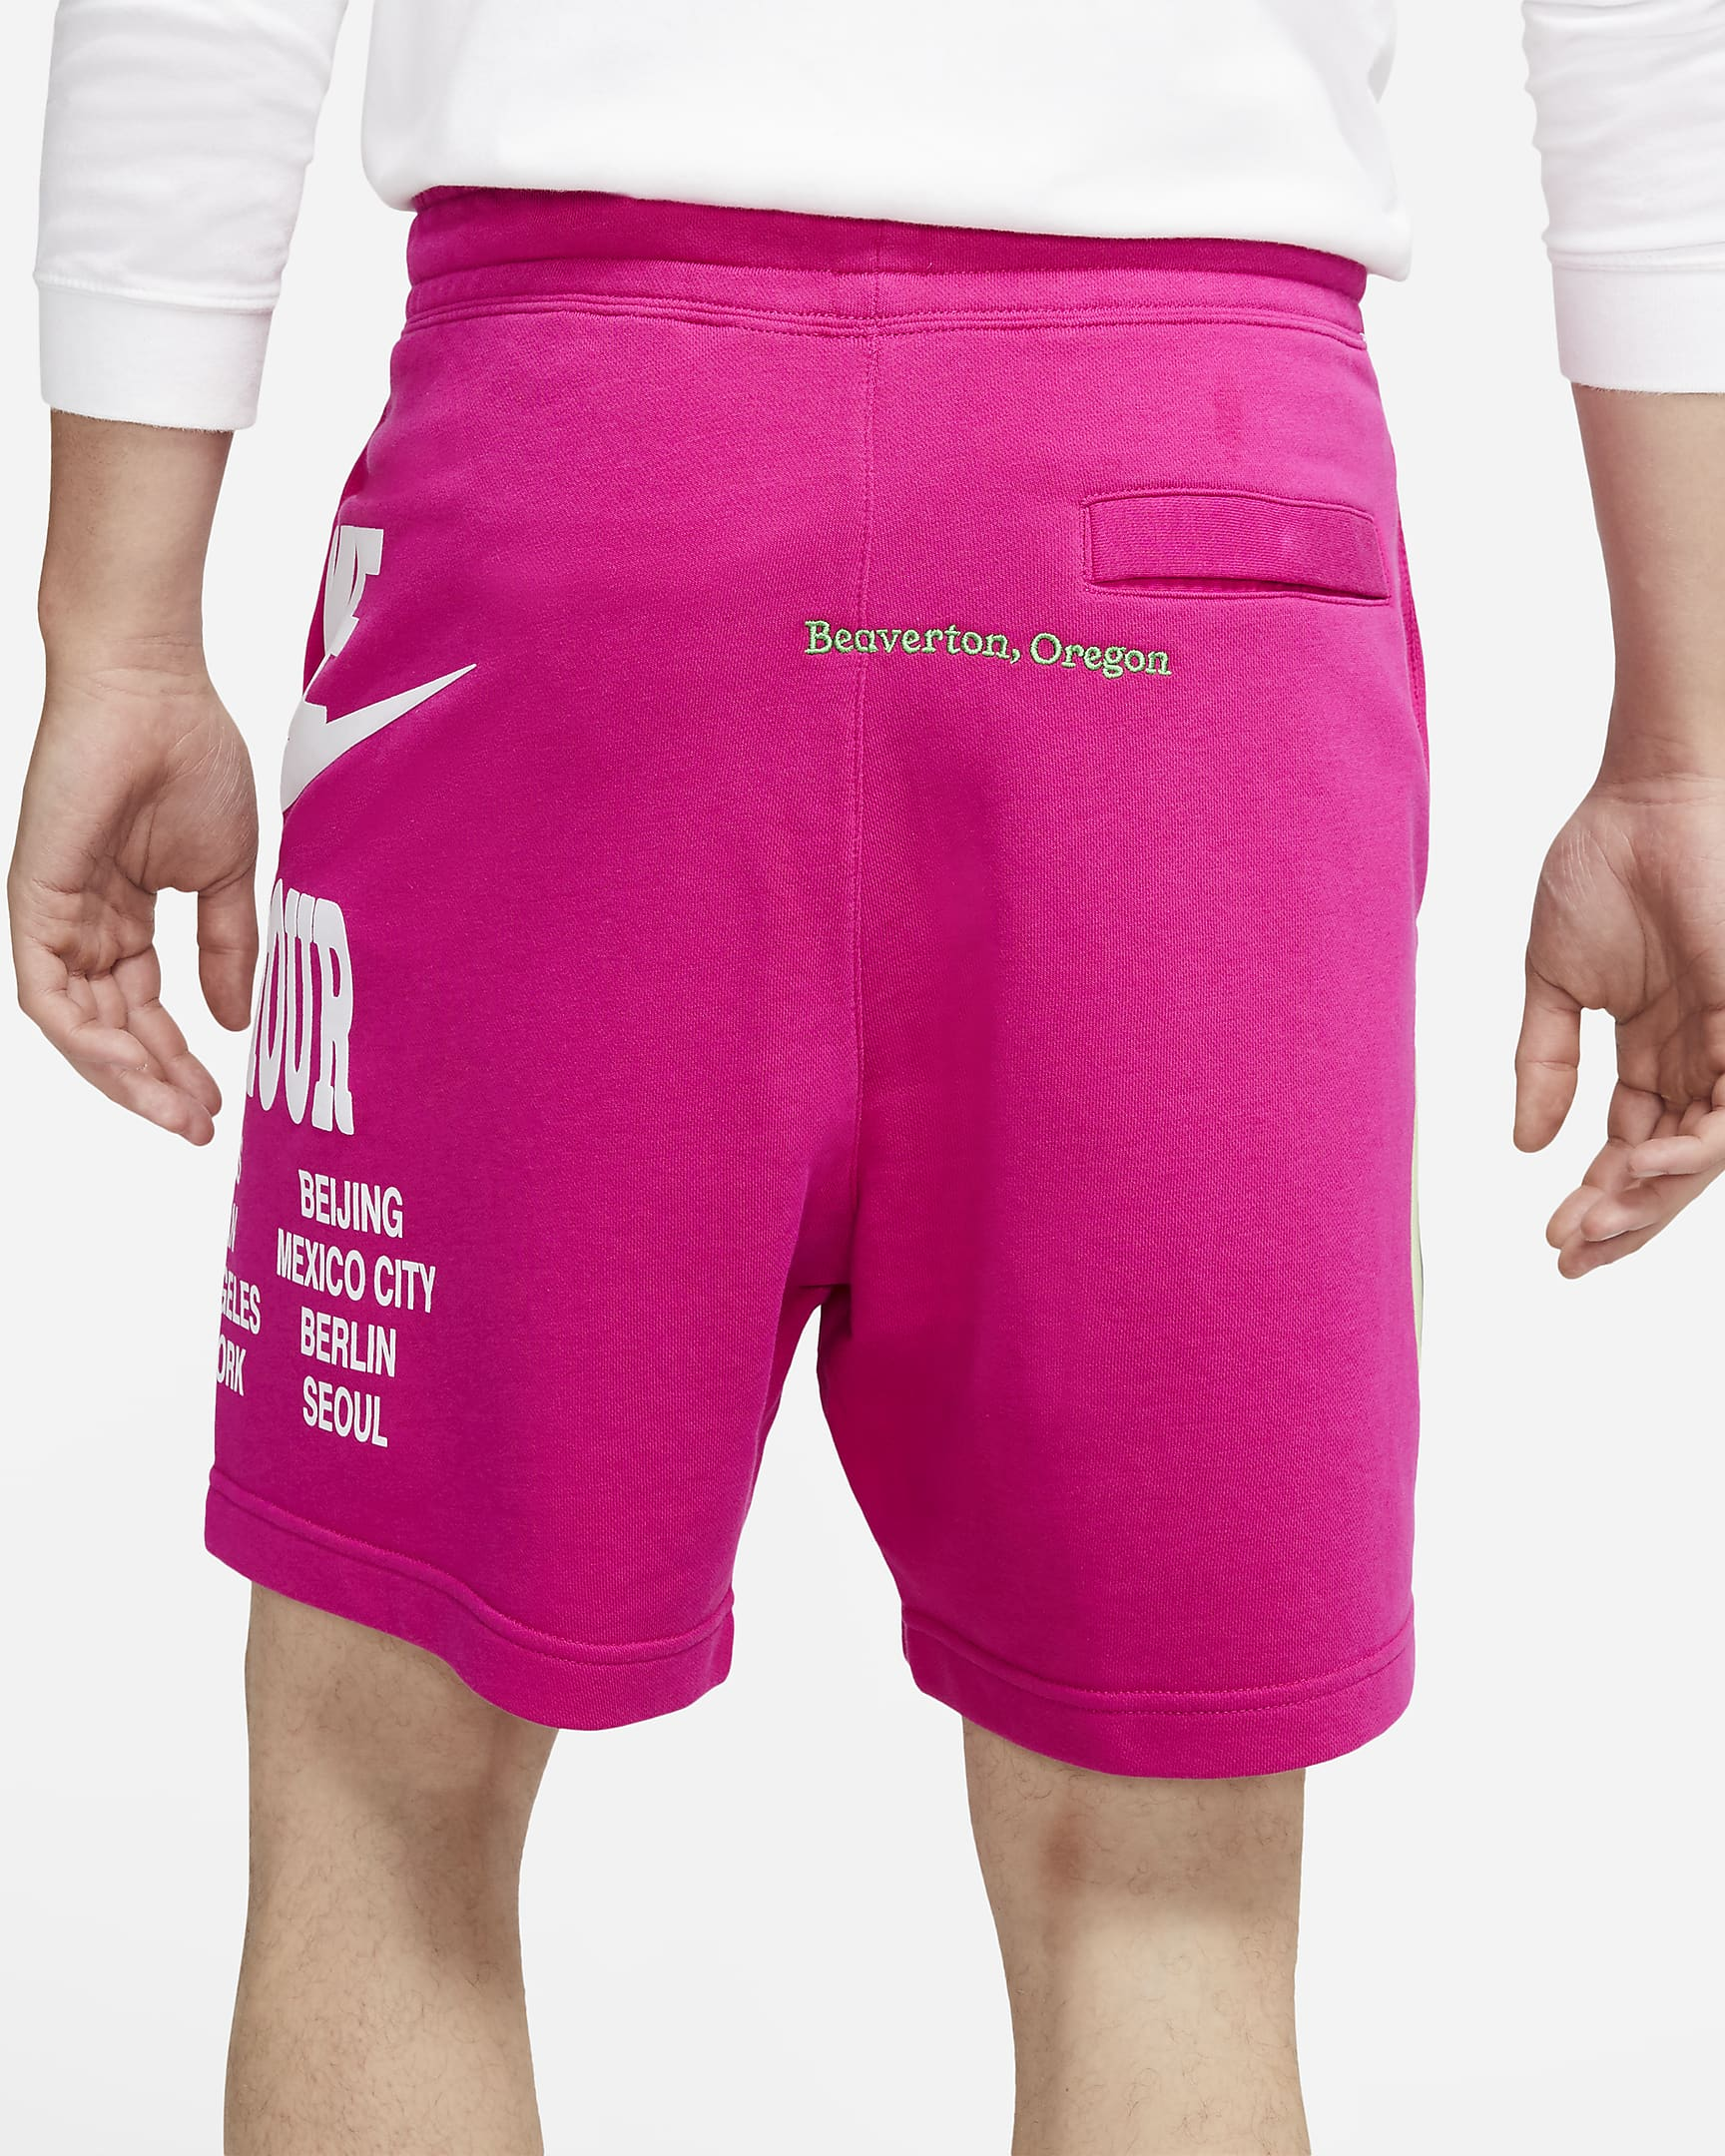 sportswear-mens-french-terry-shorts-Q00gBn-17